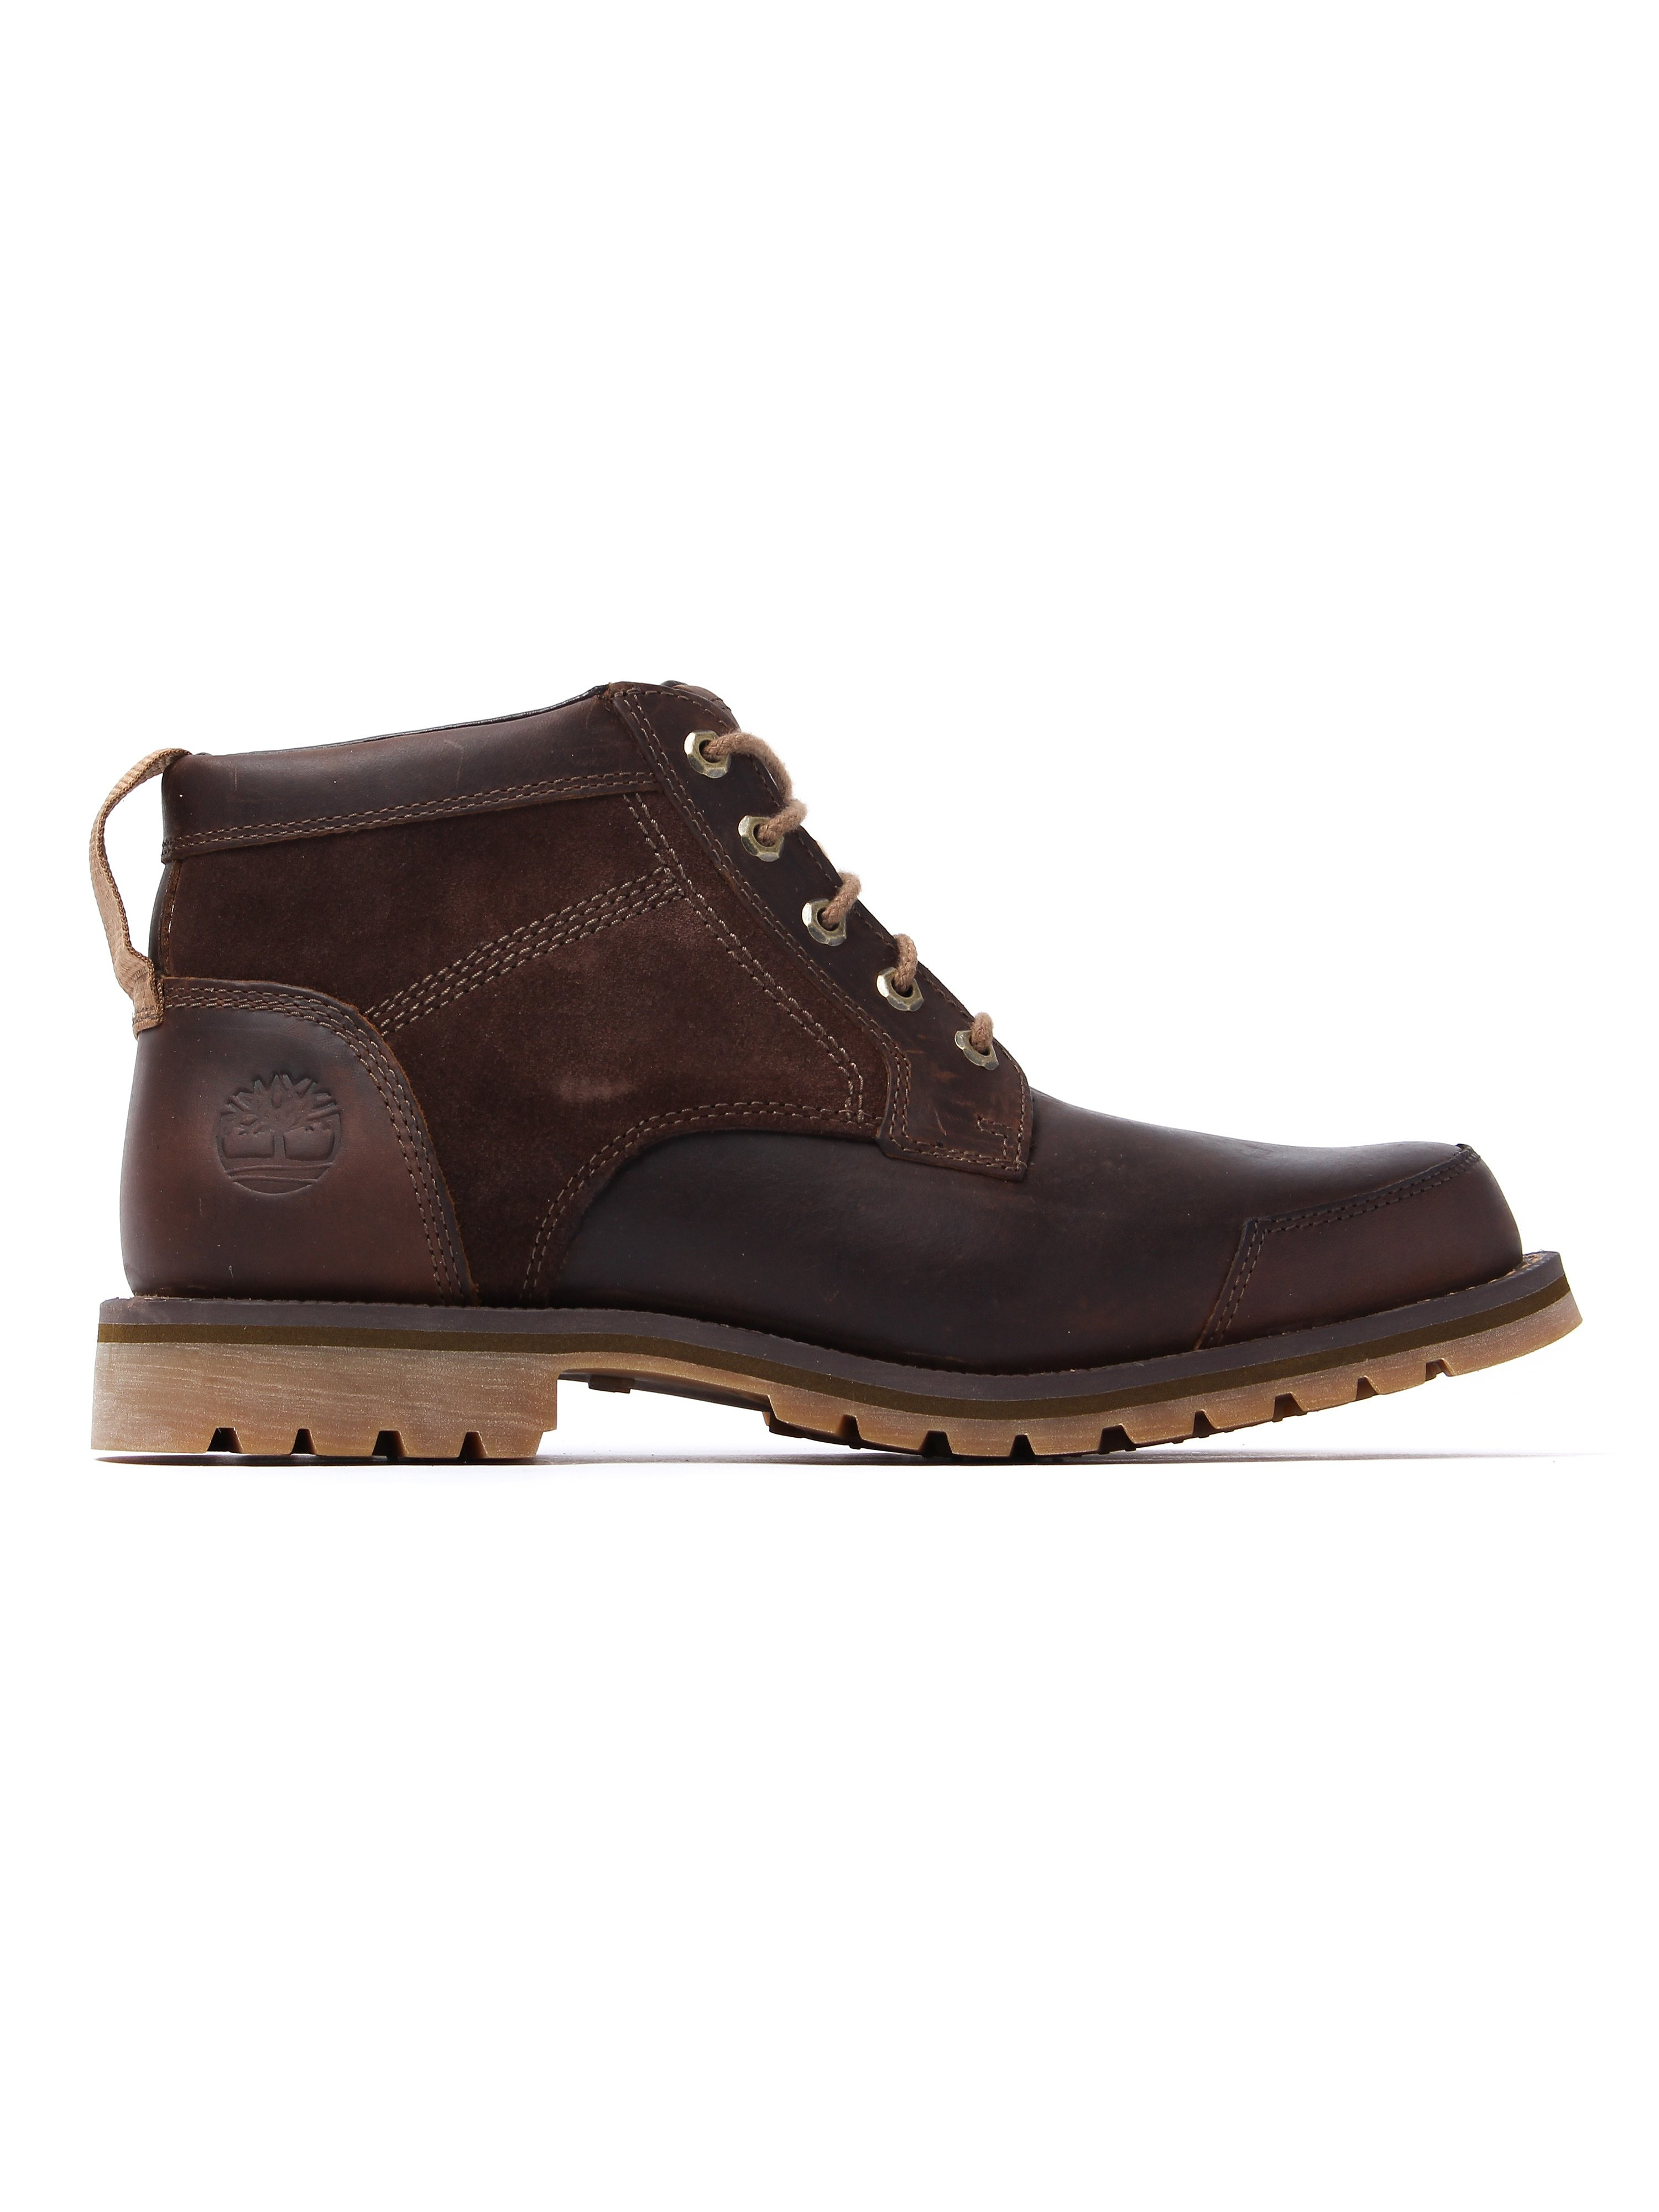 Timberland Men's Larchmont Chukka Boots - Gaucho Leather